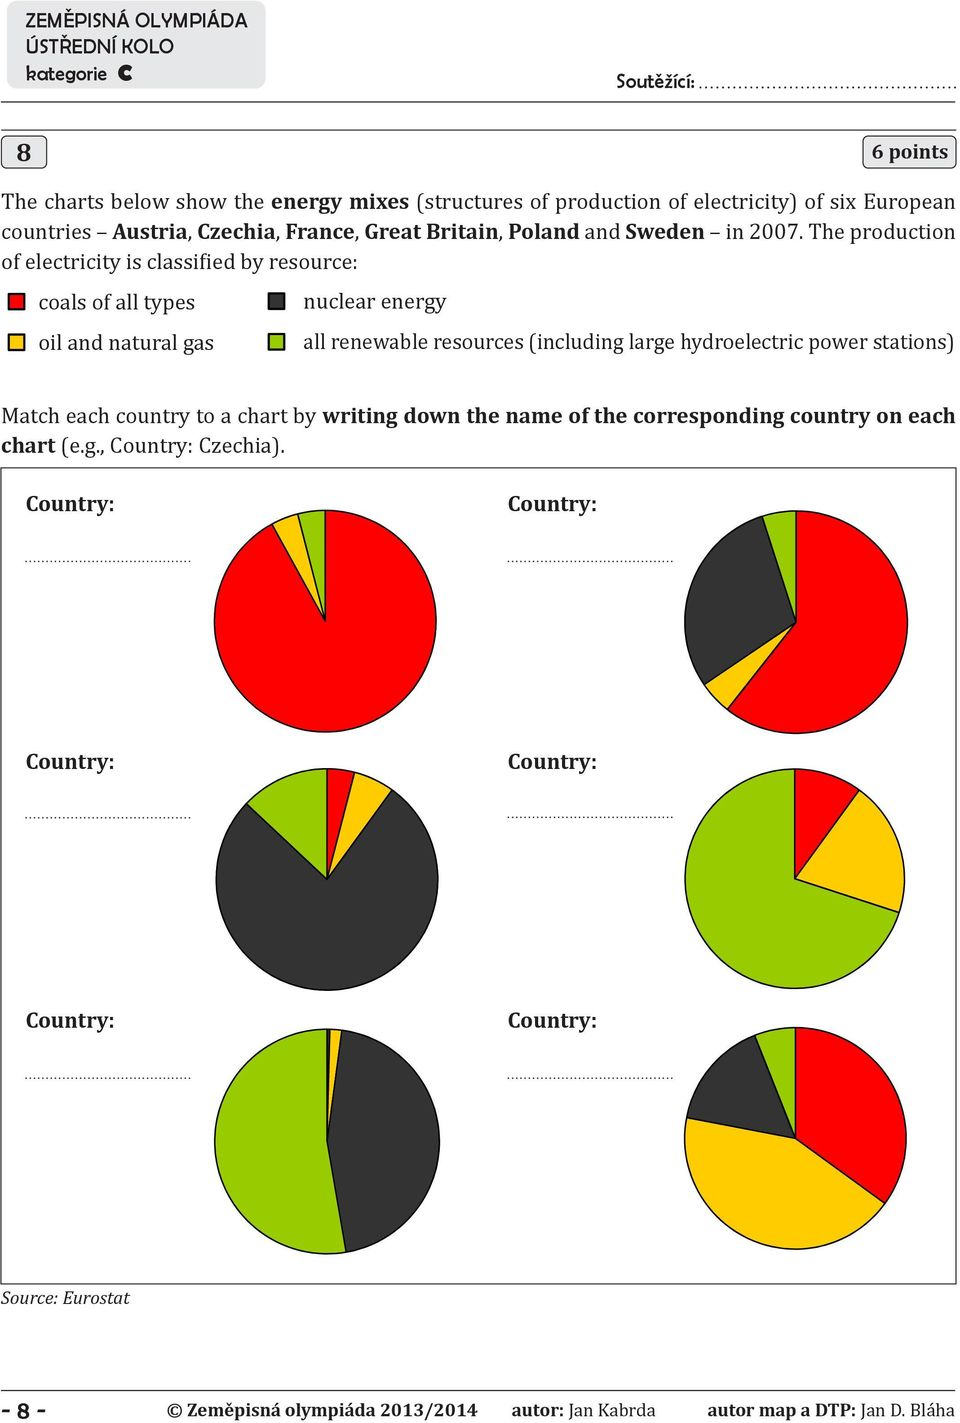 power stations) Match nuclear each Country: country Country: energyto a chart by writing down the name Country: of the Country: corresponding country on each chart (e.g., Poland Country: Poland Czechia).